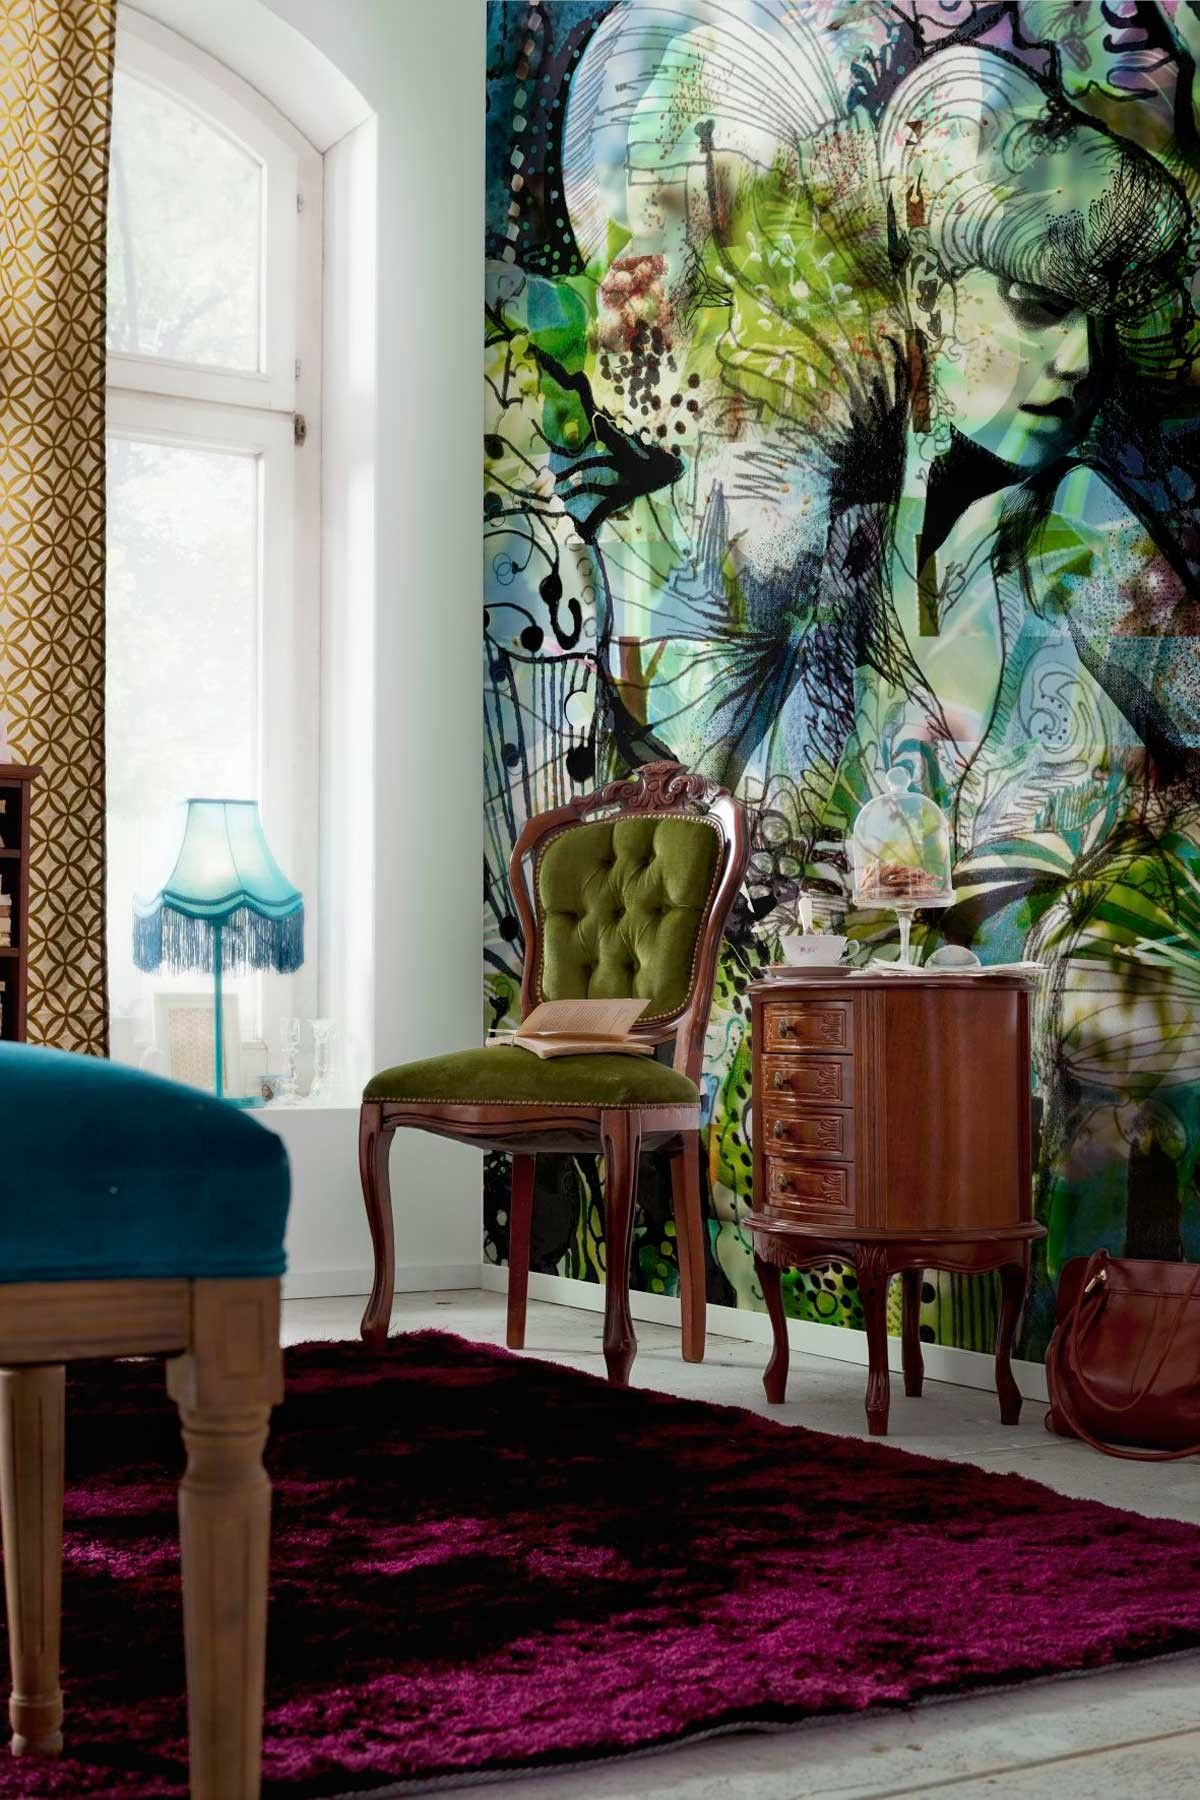 Aphroditeu0027s Garden Wall Mural | Loving The Wall Art, And That Chair.